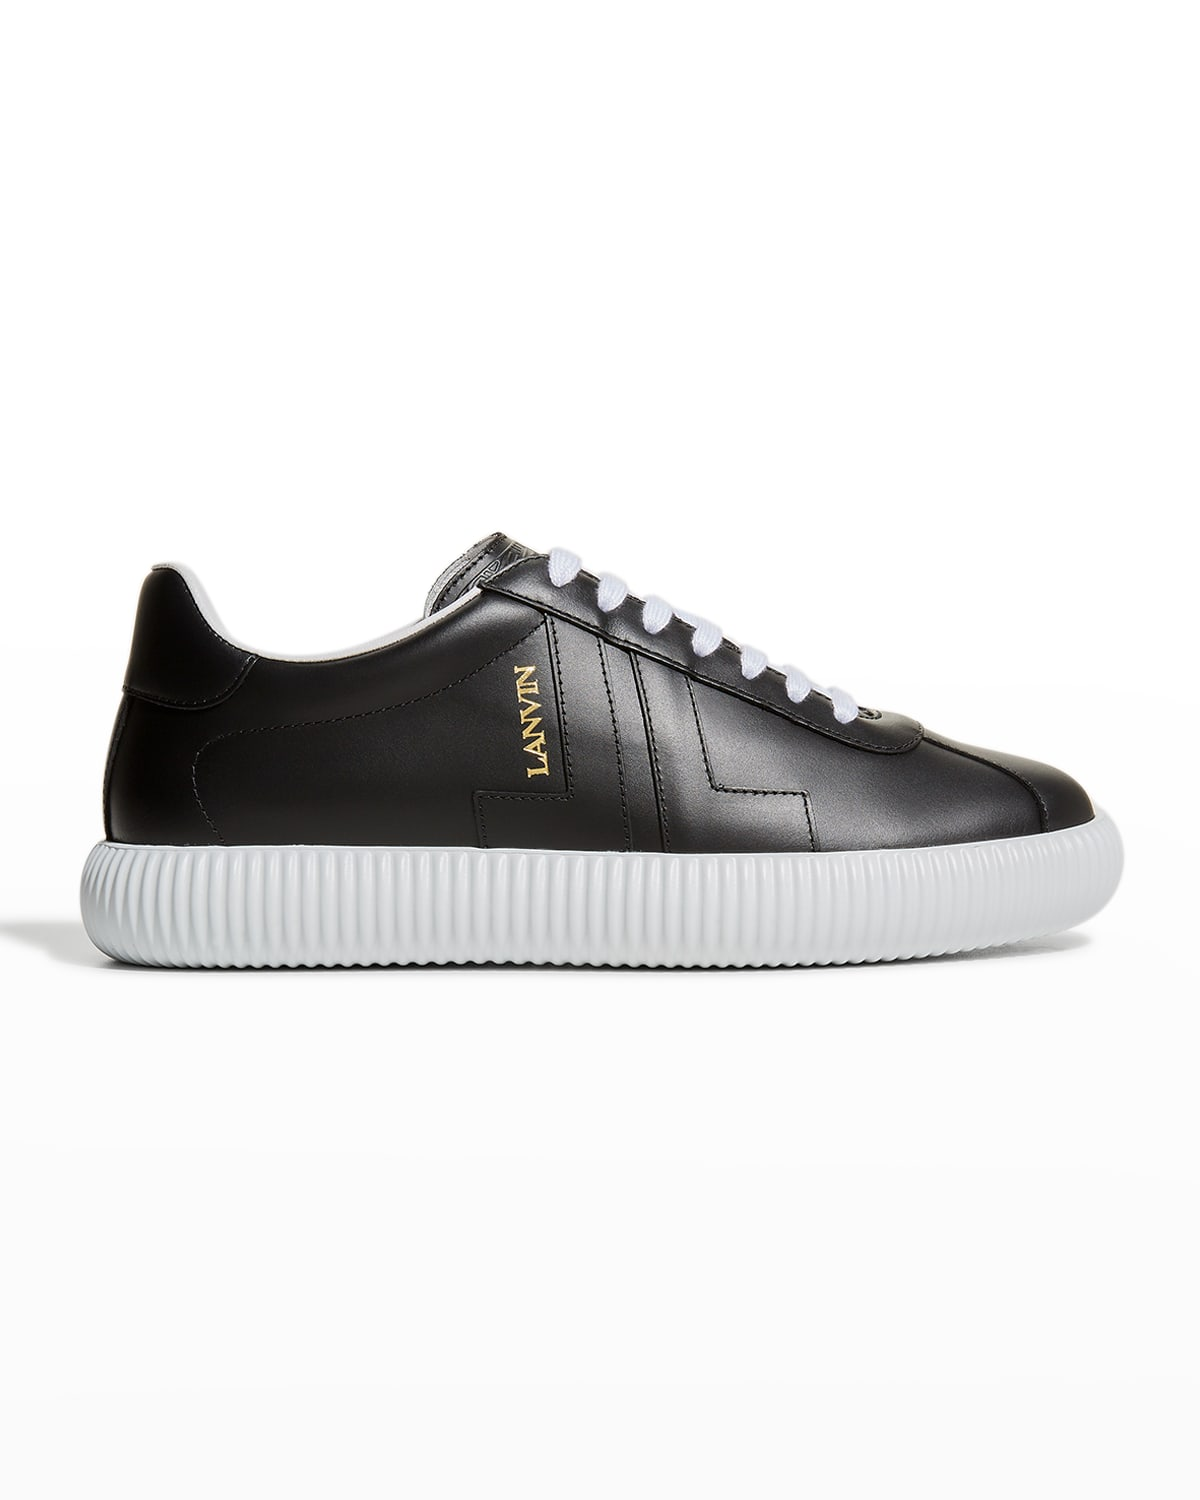 Men's Smooth Leather Low-Top Sneakers